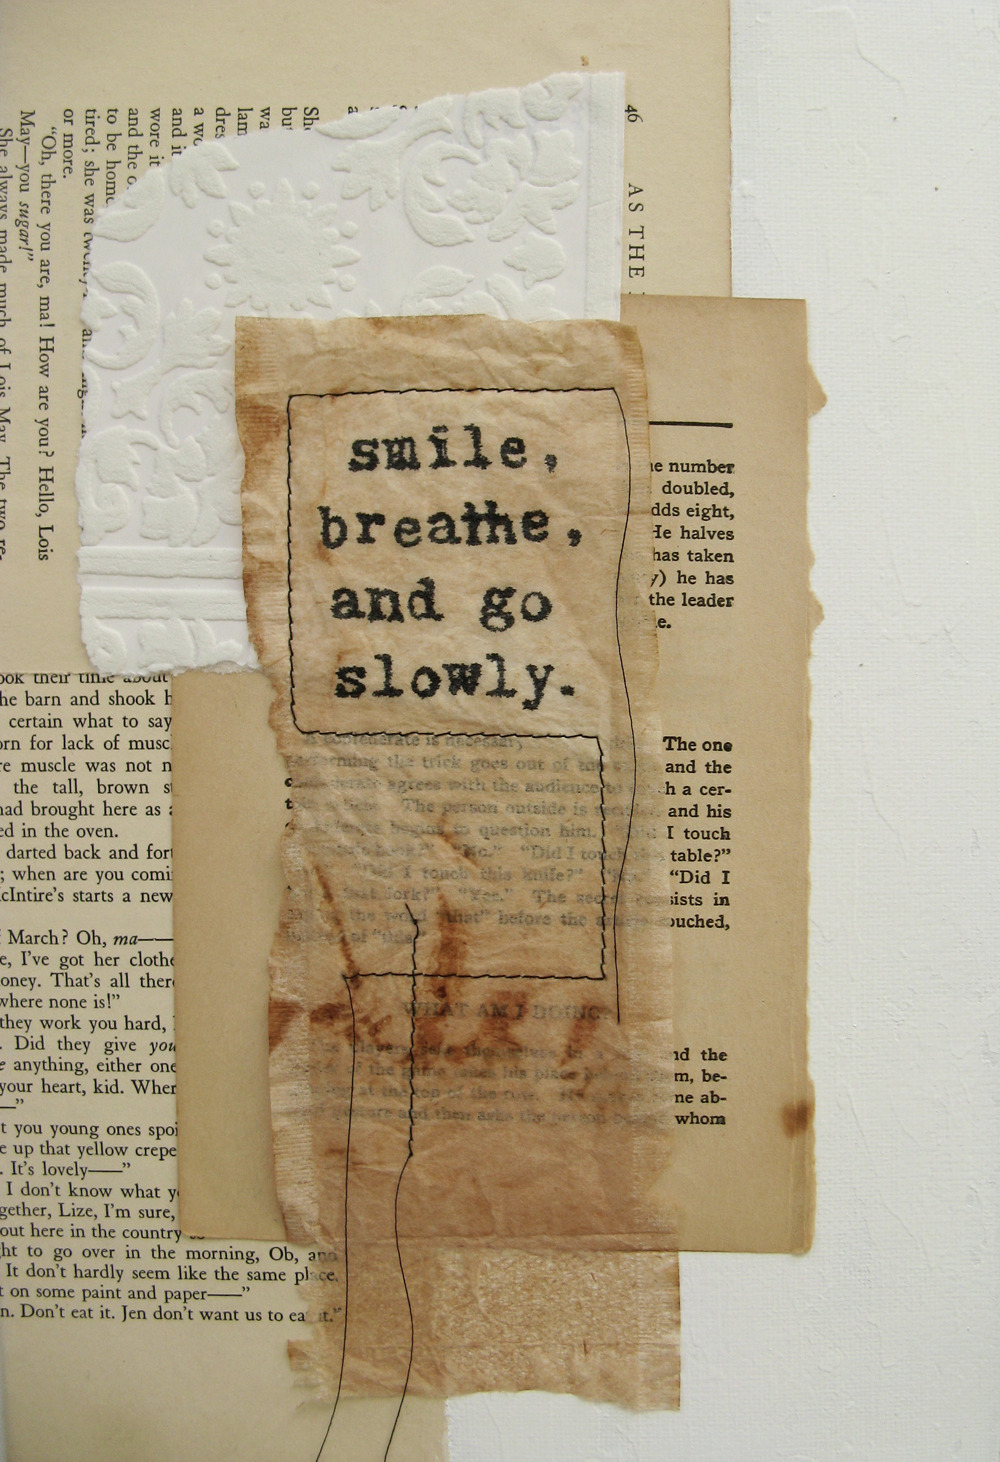 workman:  ancagray: go slowly.  mixed media collage.  anca gray.  2012.